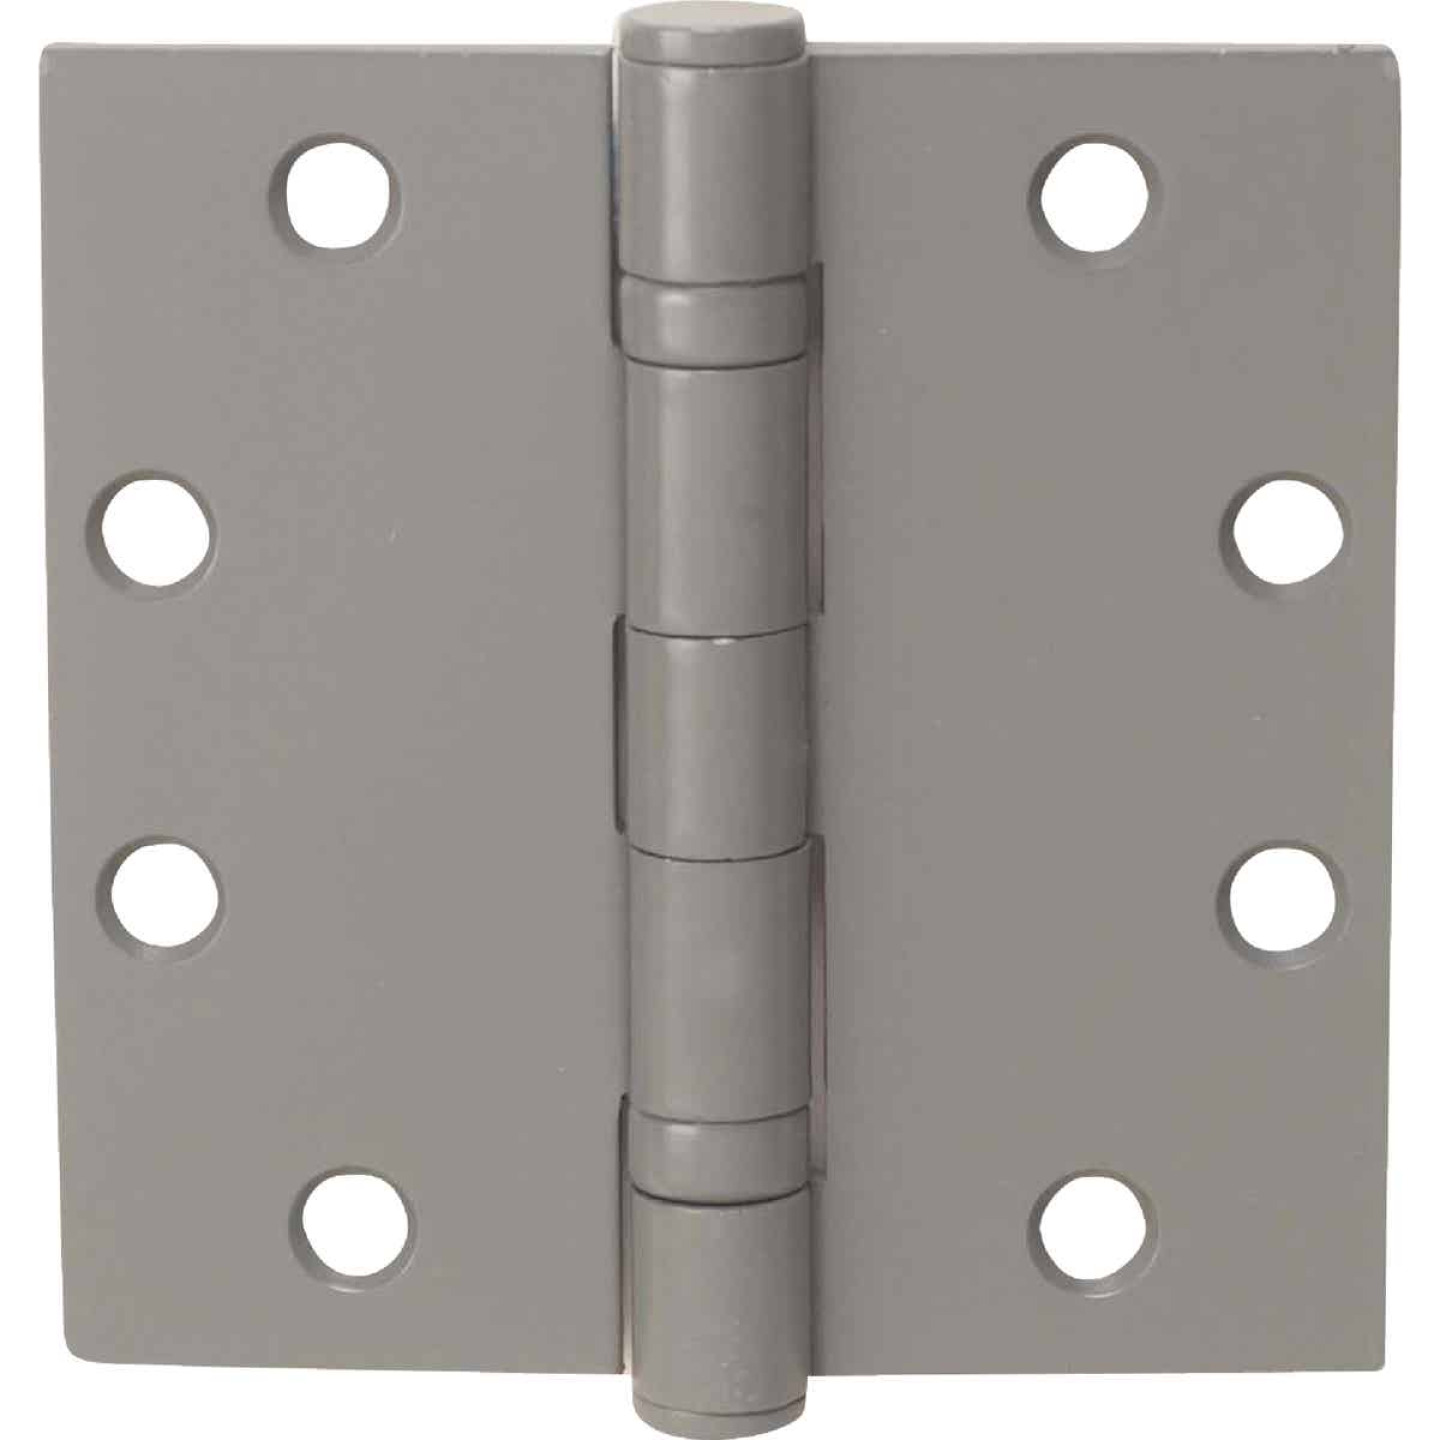 Tell Commercial 4-1/2 In. Square Prime Coat Ball Bearing Door Hinge (3-Pack) Image 1